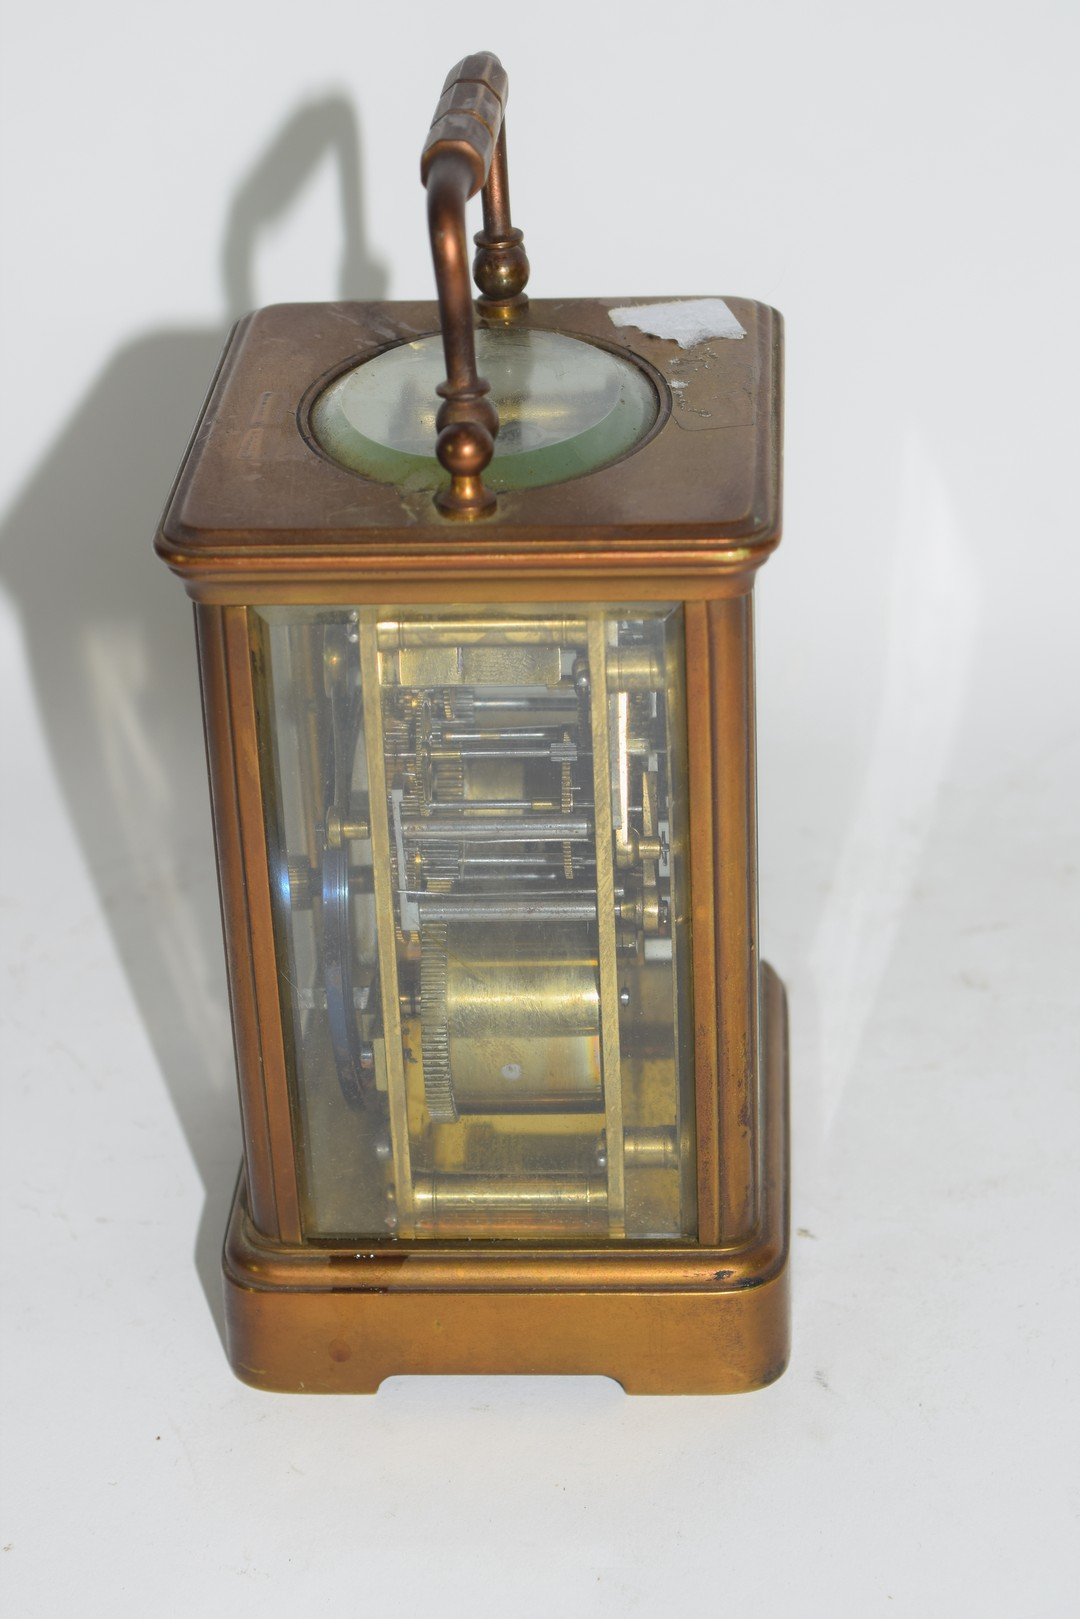 Brass carriage clock - Image 4 of 5